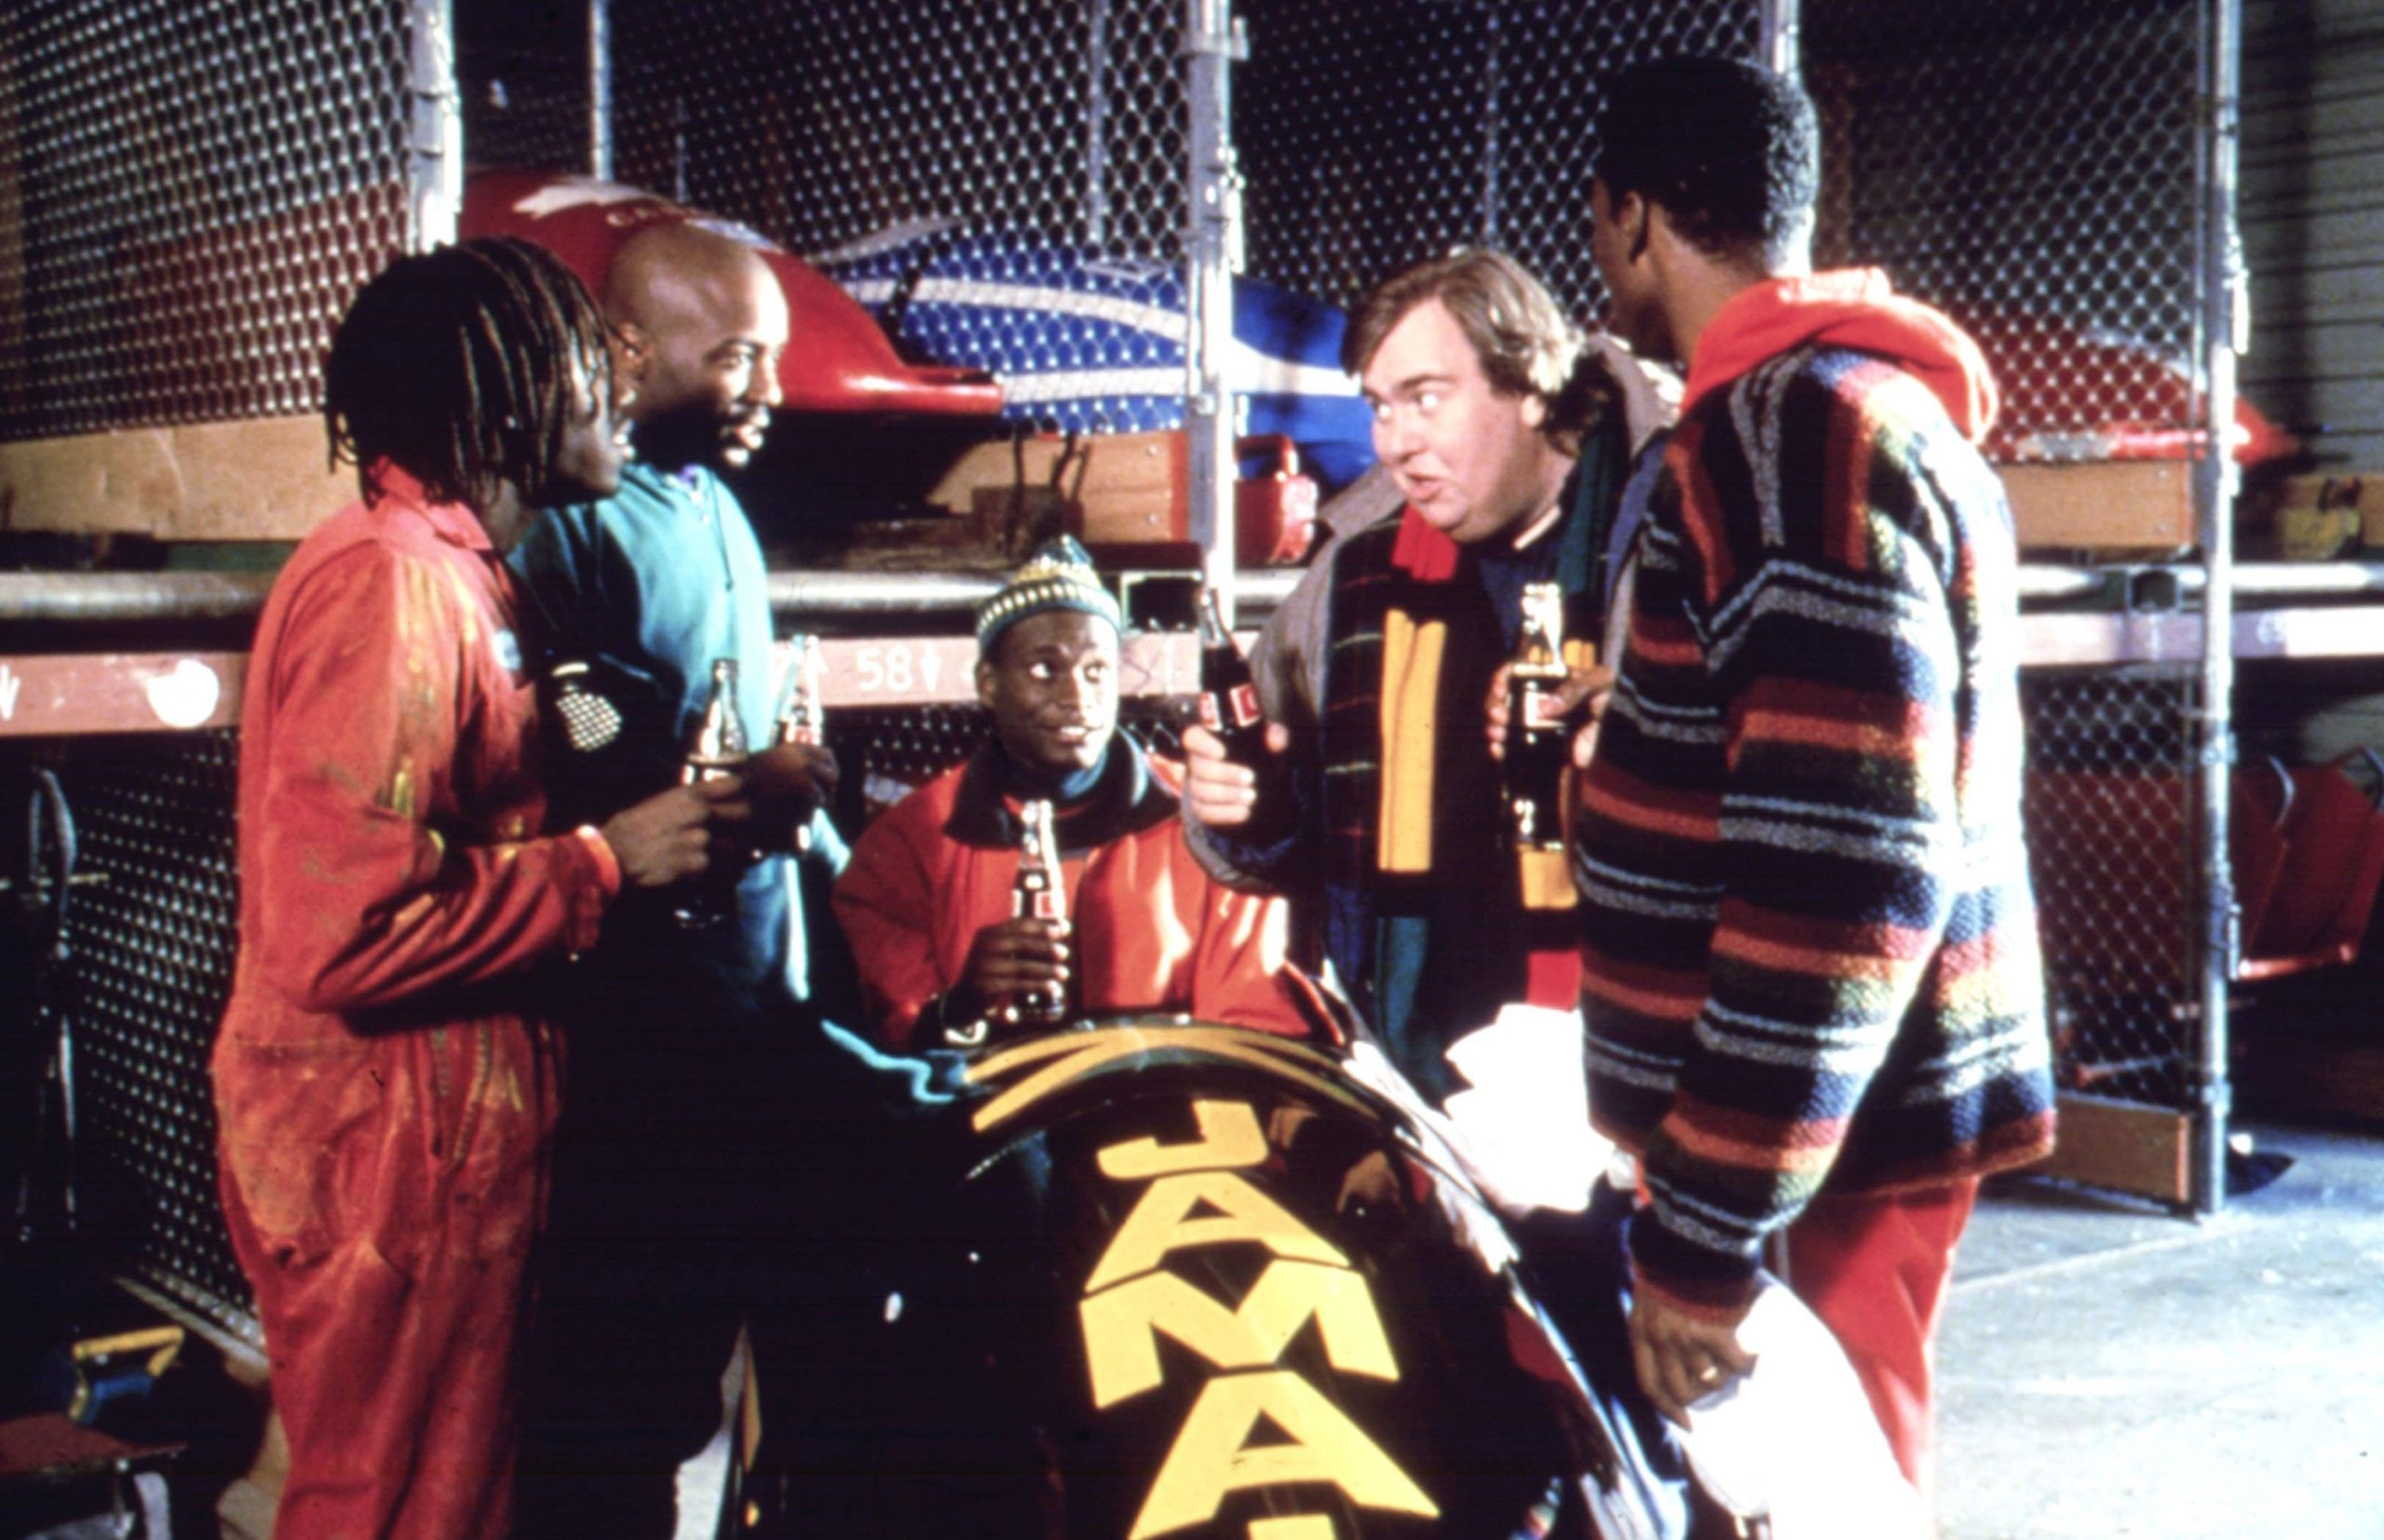 1499860800 cool runnings film scaled Films 'Based On A True Story' That Completely Lied To Us